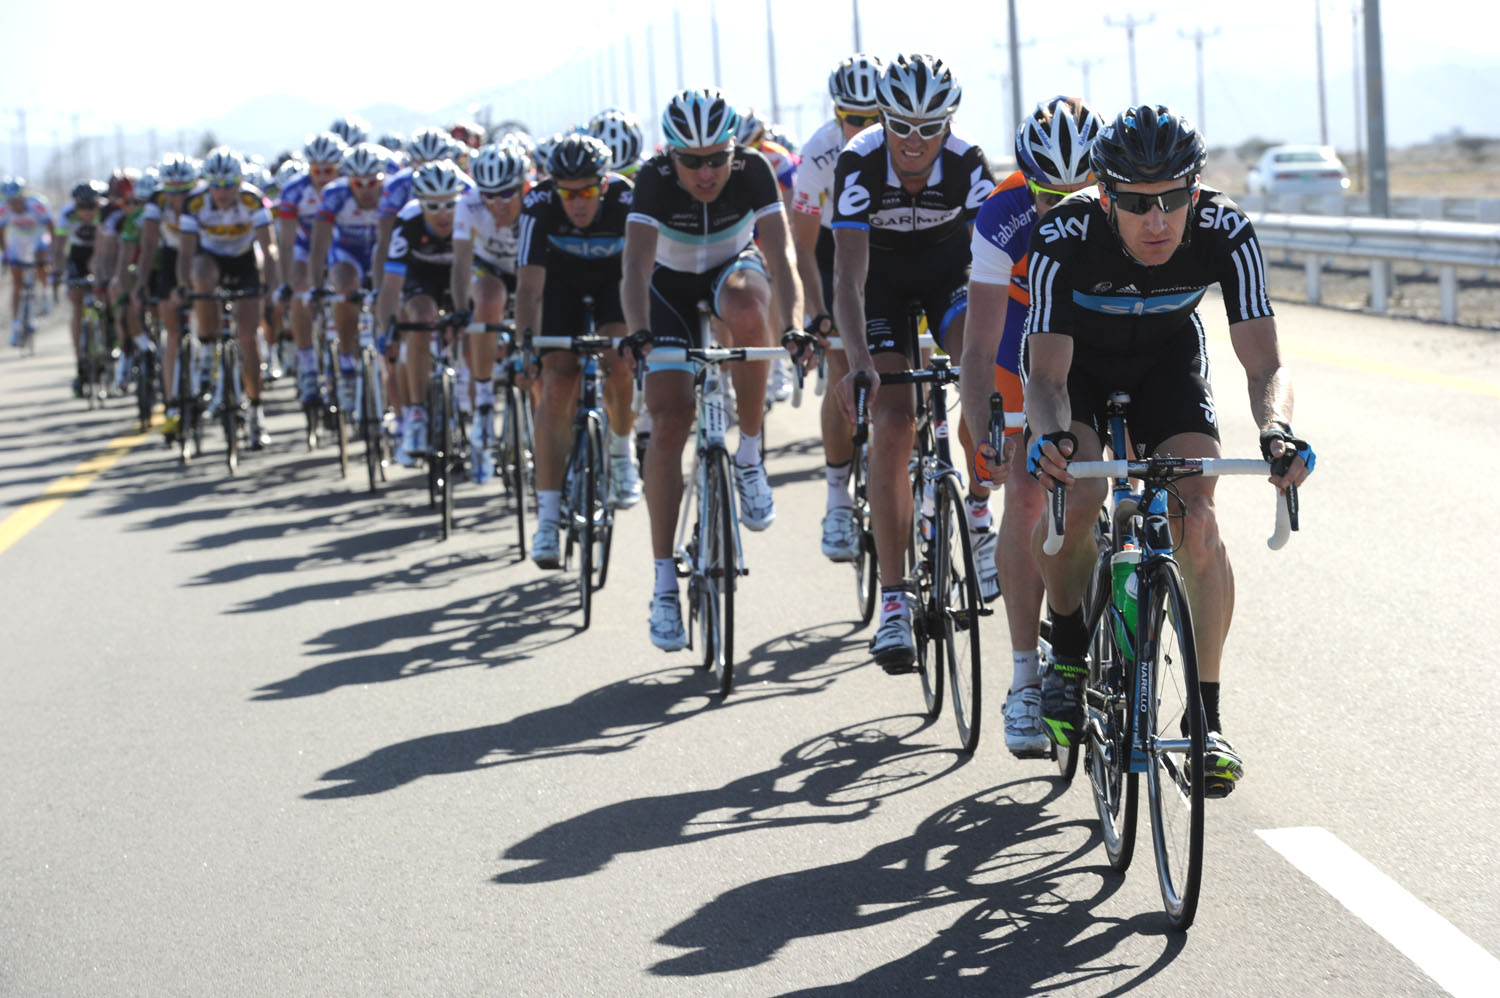 Team Sky chases, Tour of Oman 2011, stage one